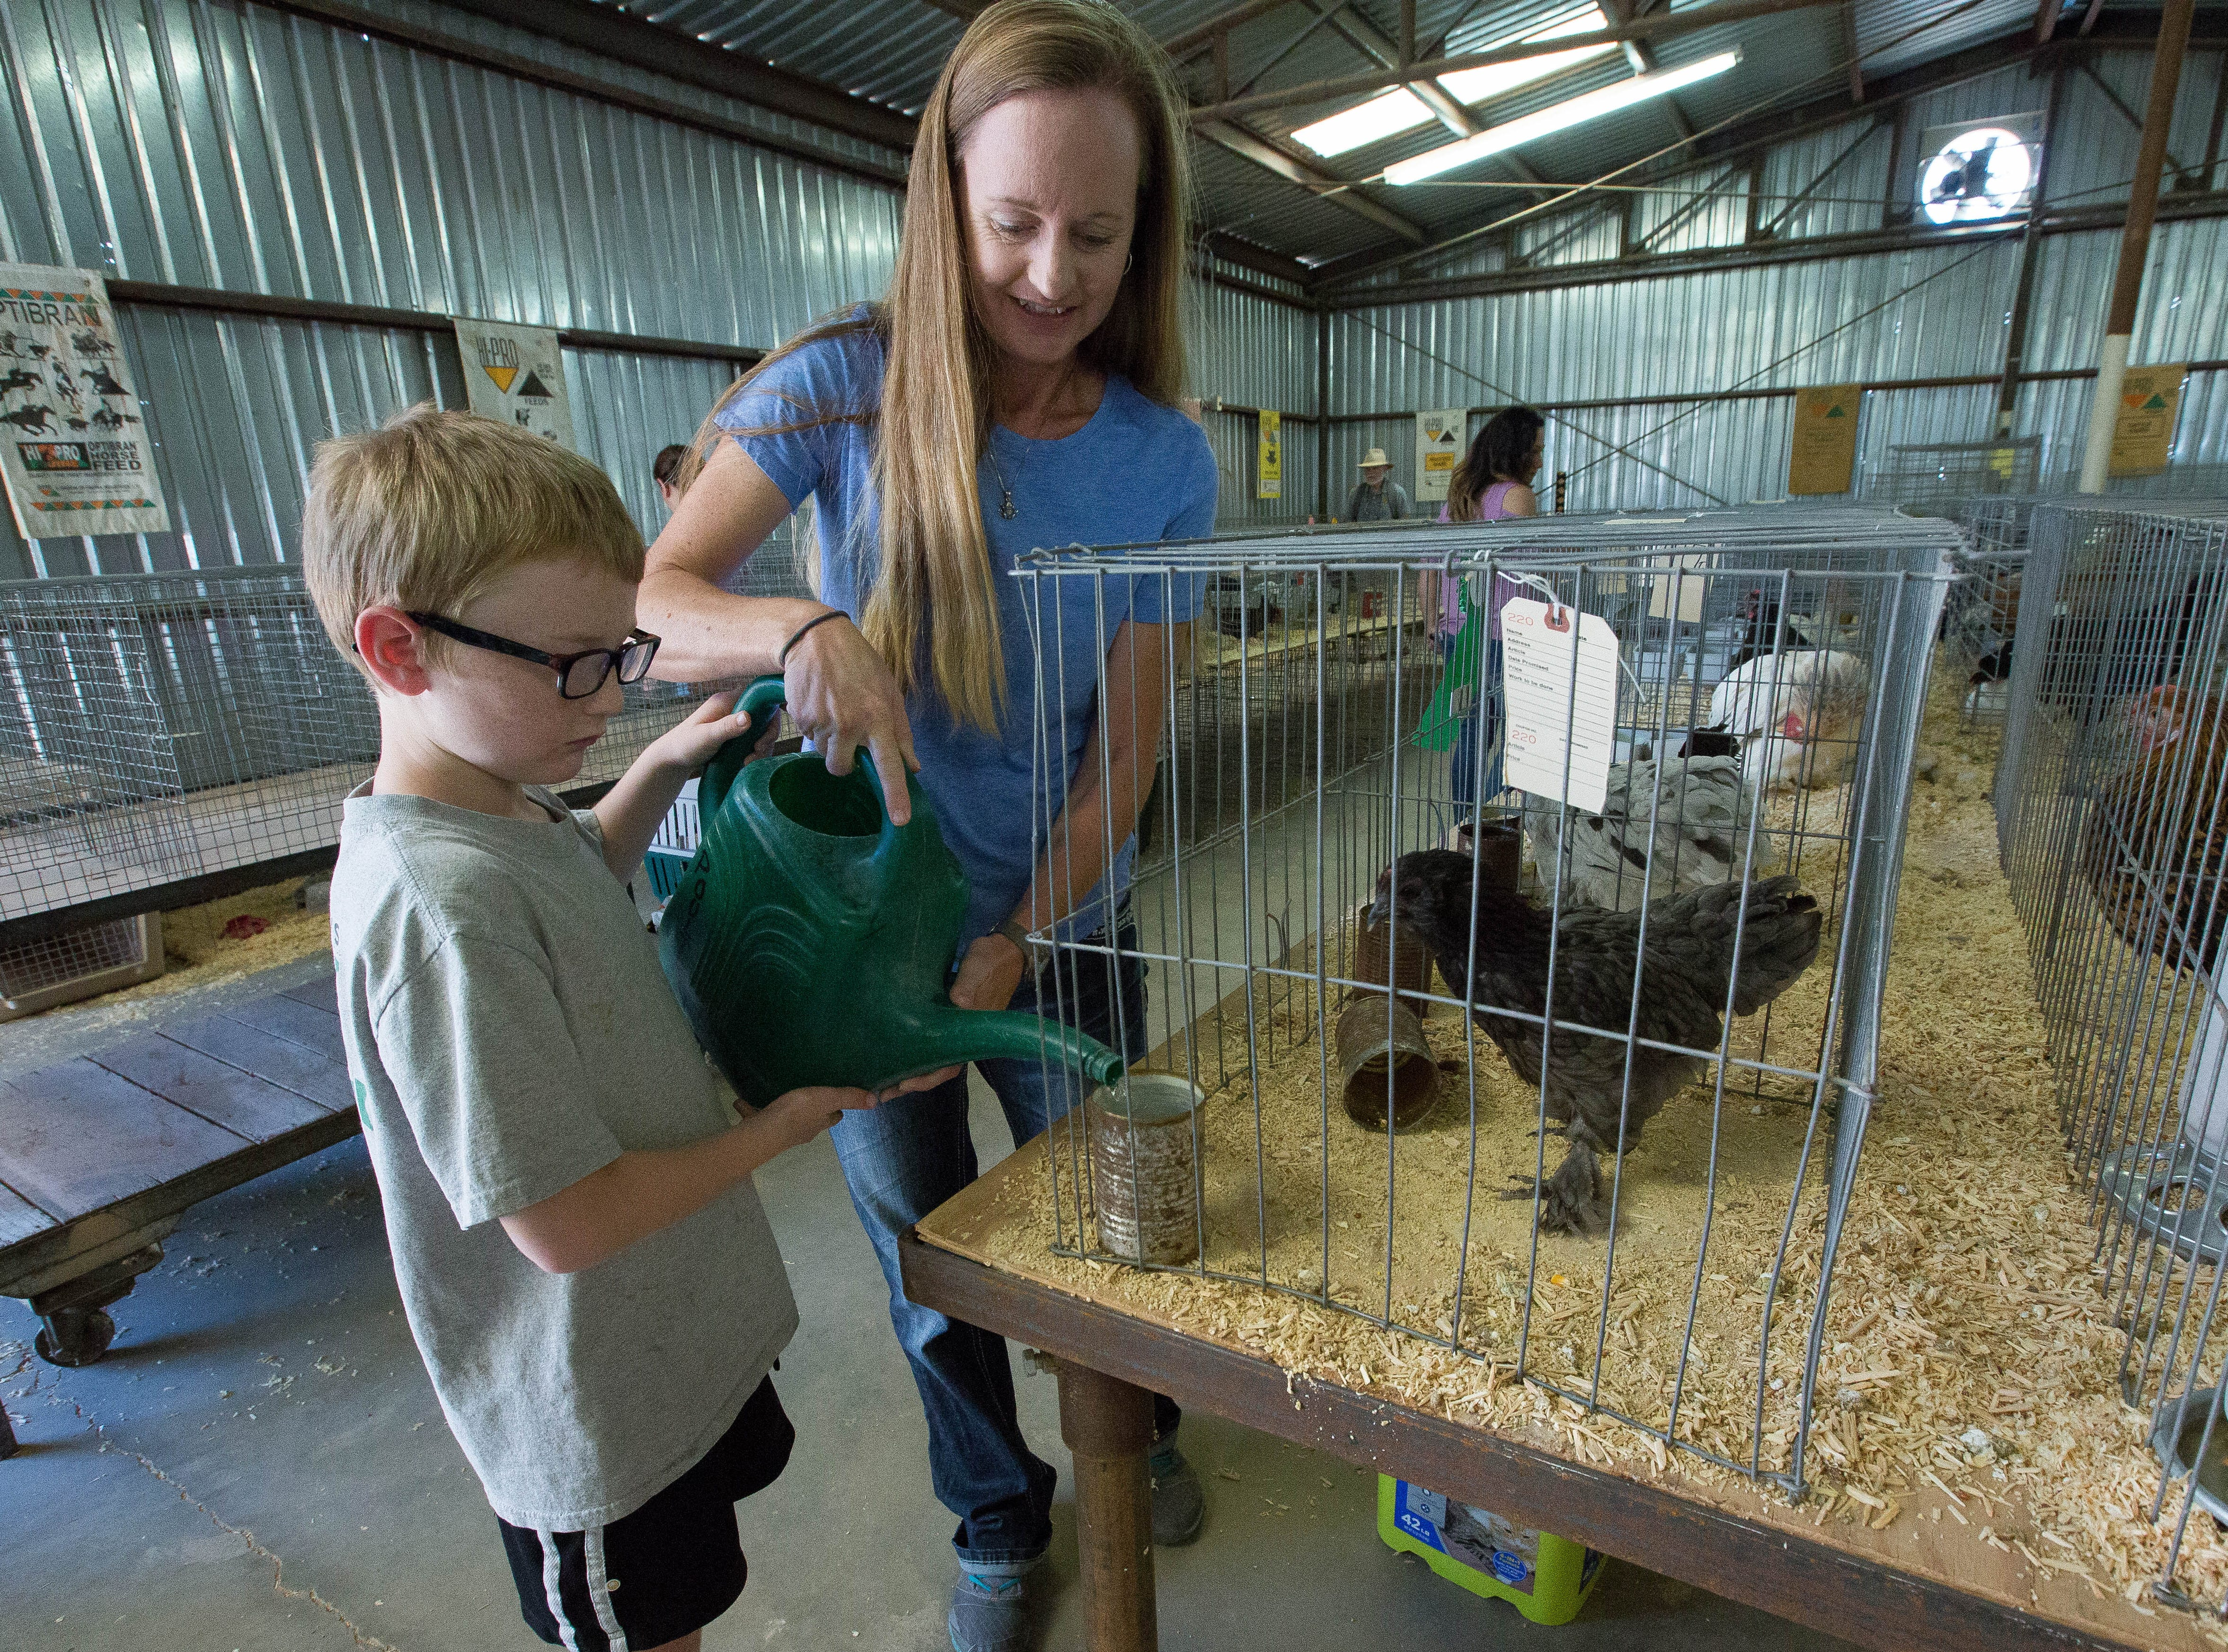 Brody Kirby, 7, and his mom Melissa Kirby, water Larson Kirby's chickens in the Poultry barn at the Southern New Mexico State Fair and Rodeo, Friday September 28, 2018.